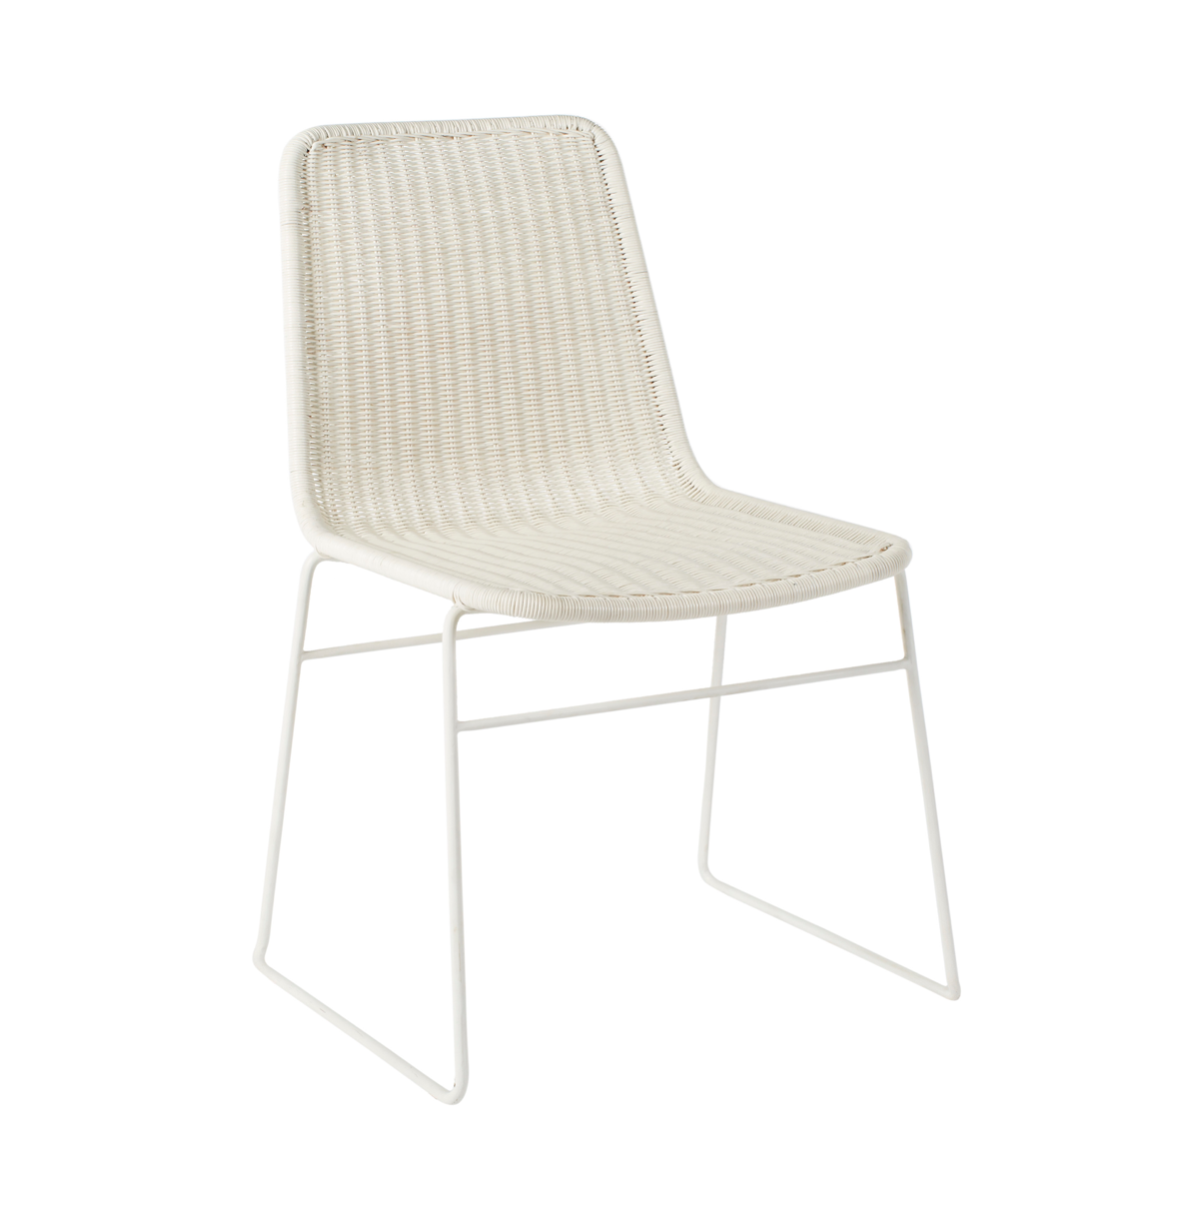 Olivia Dining Chair | White Rattan